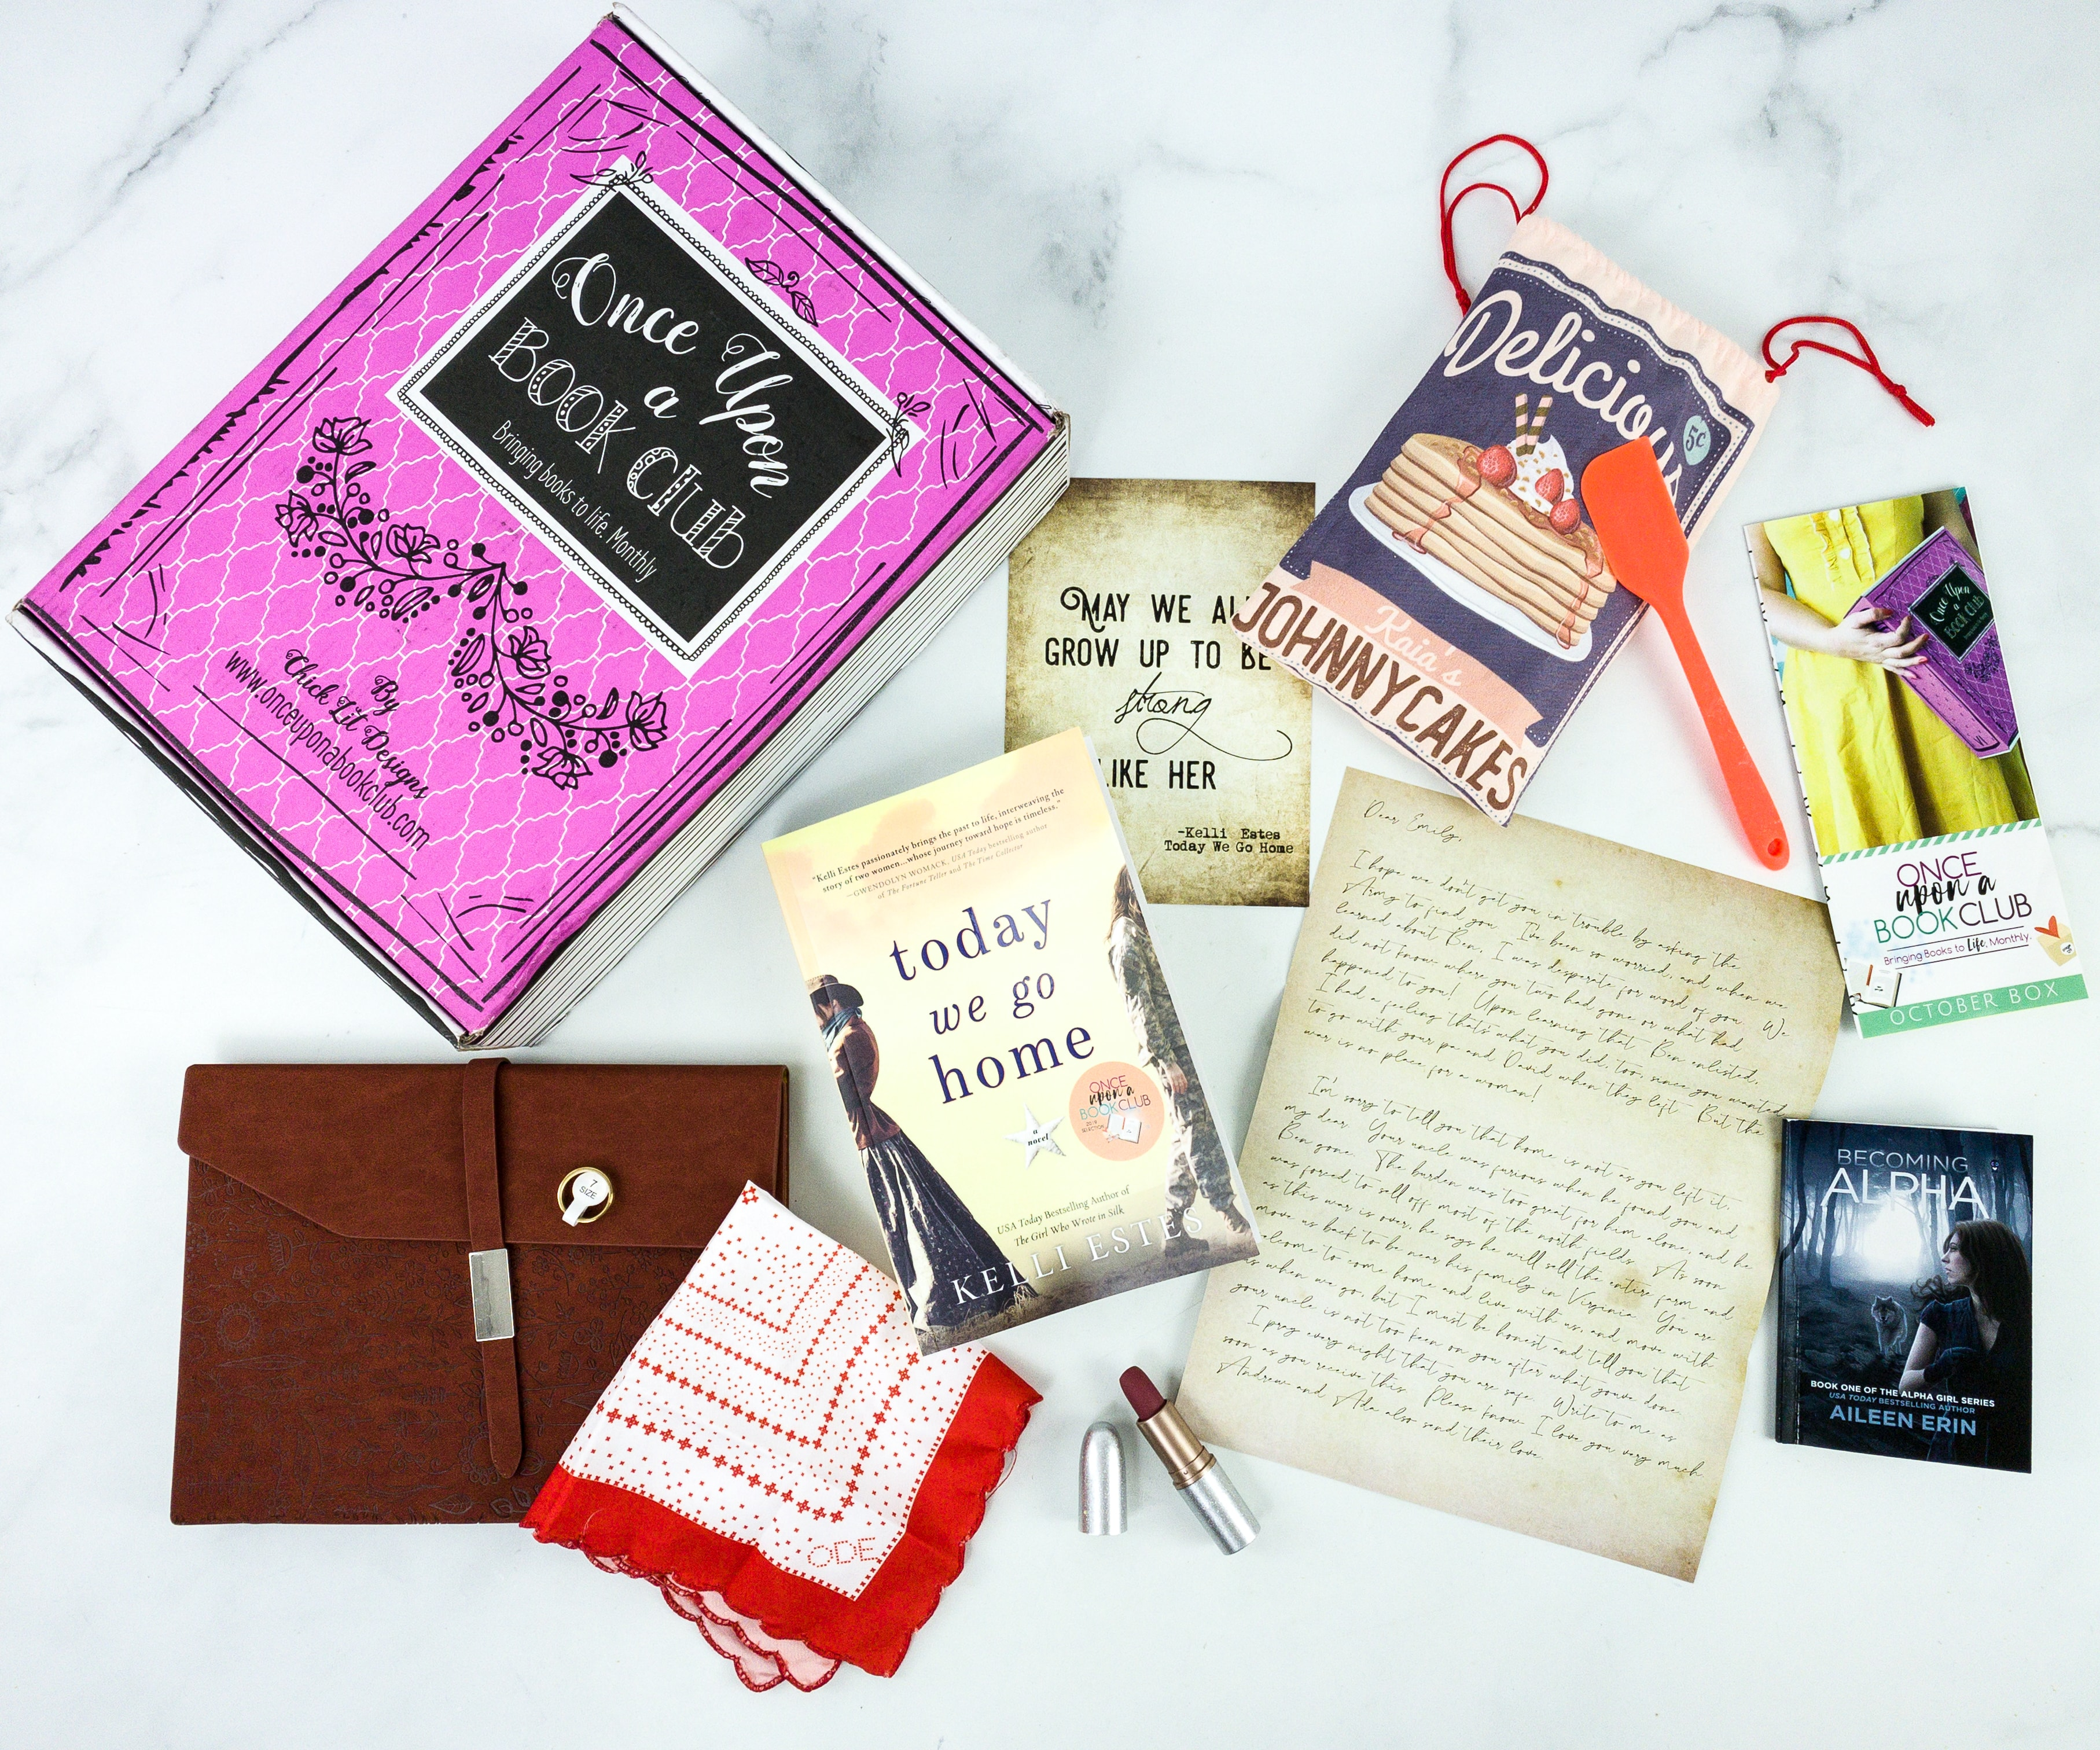 Once Upon a Book Club October 2019 Subscription Box Review + Coupon – Adult Box